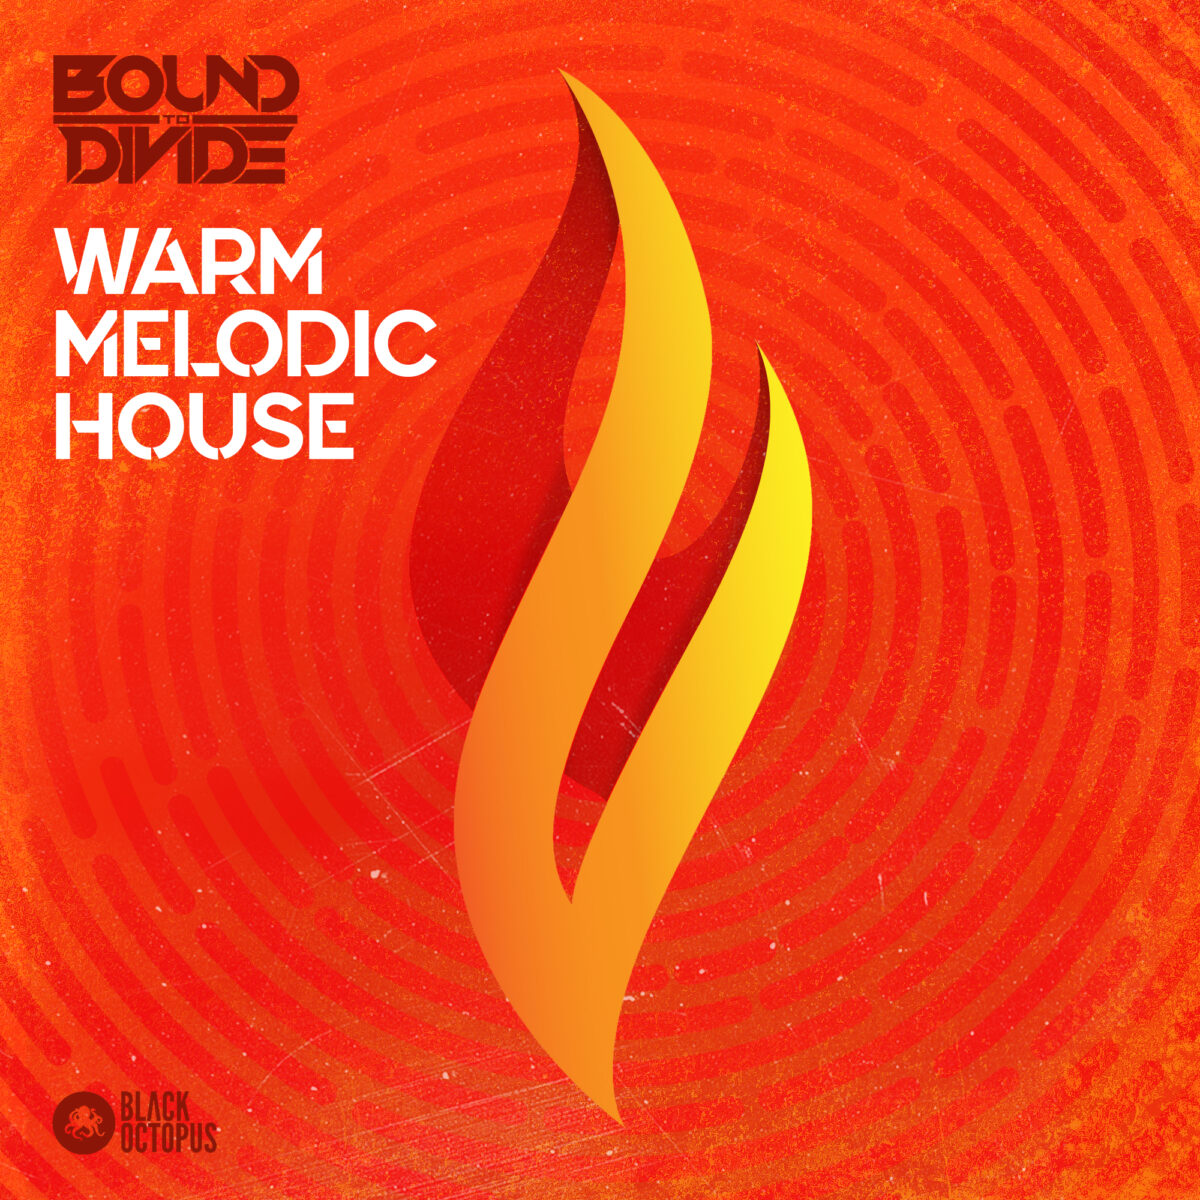 Black Octopus Sound | Warm Melodic House by Bound To Divide